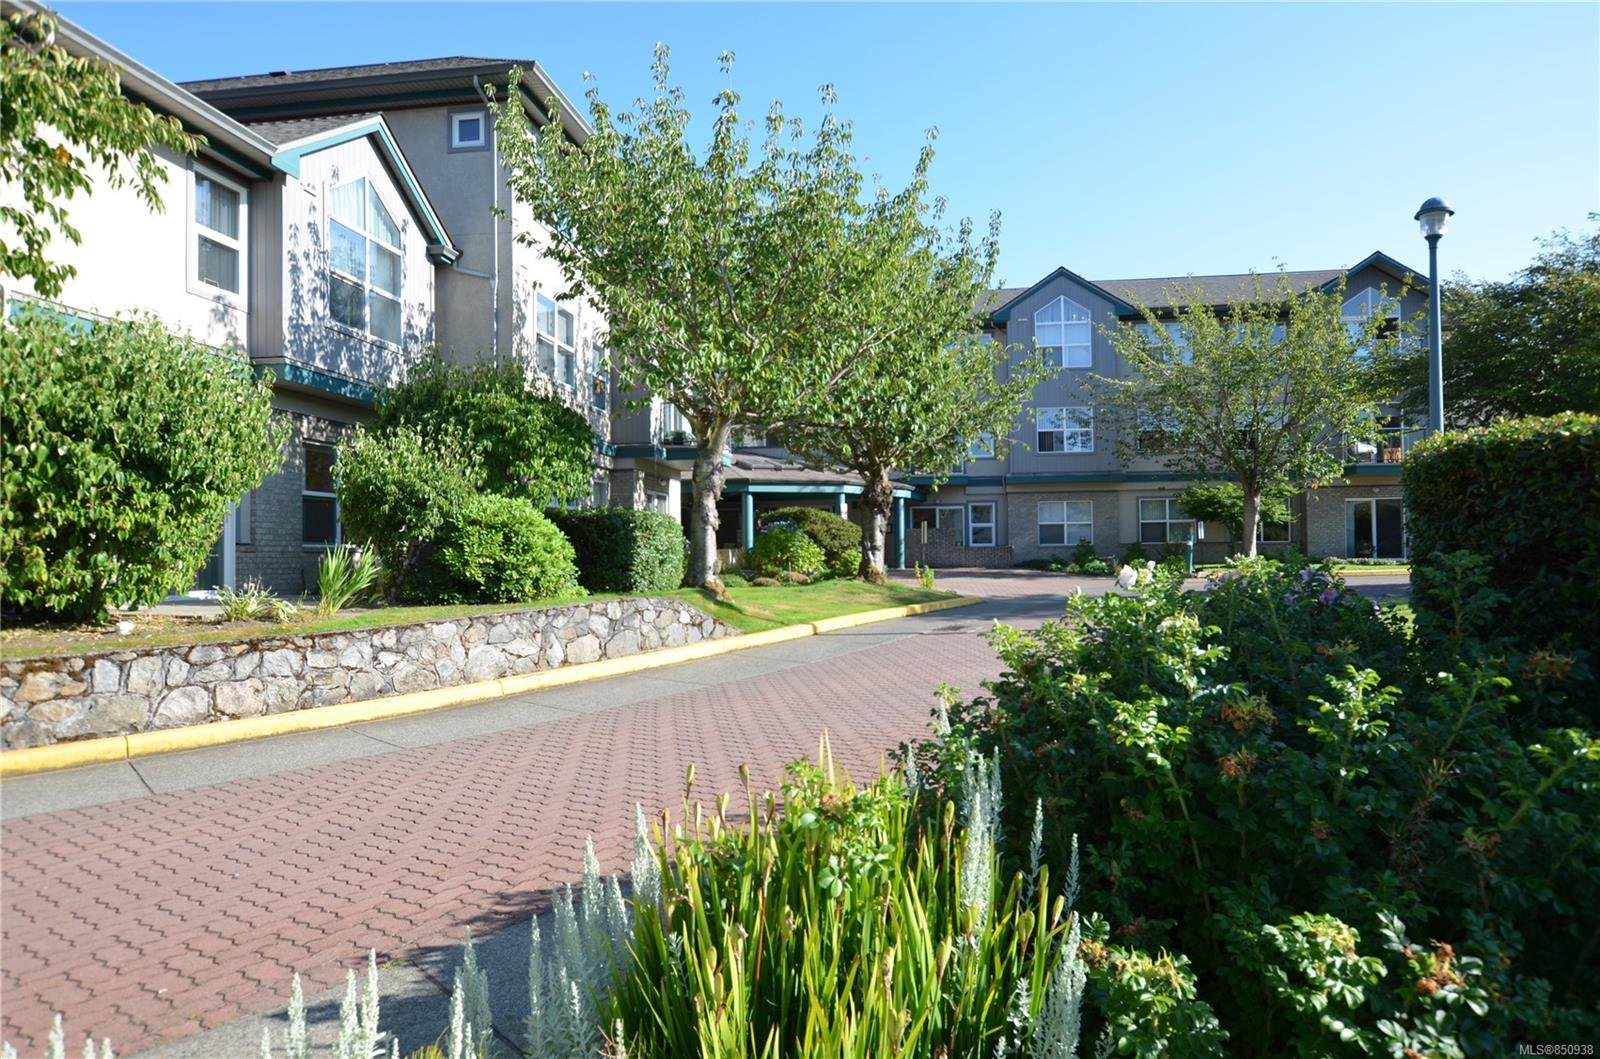 Main Photo: 212 1485 Garnet Rd in : SE Cedar Hill Condo for sale (Saanich East)  : MLS®# 850938